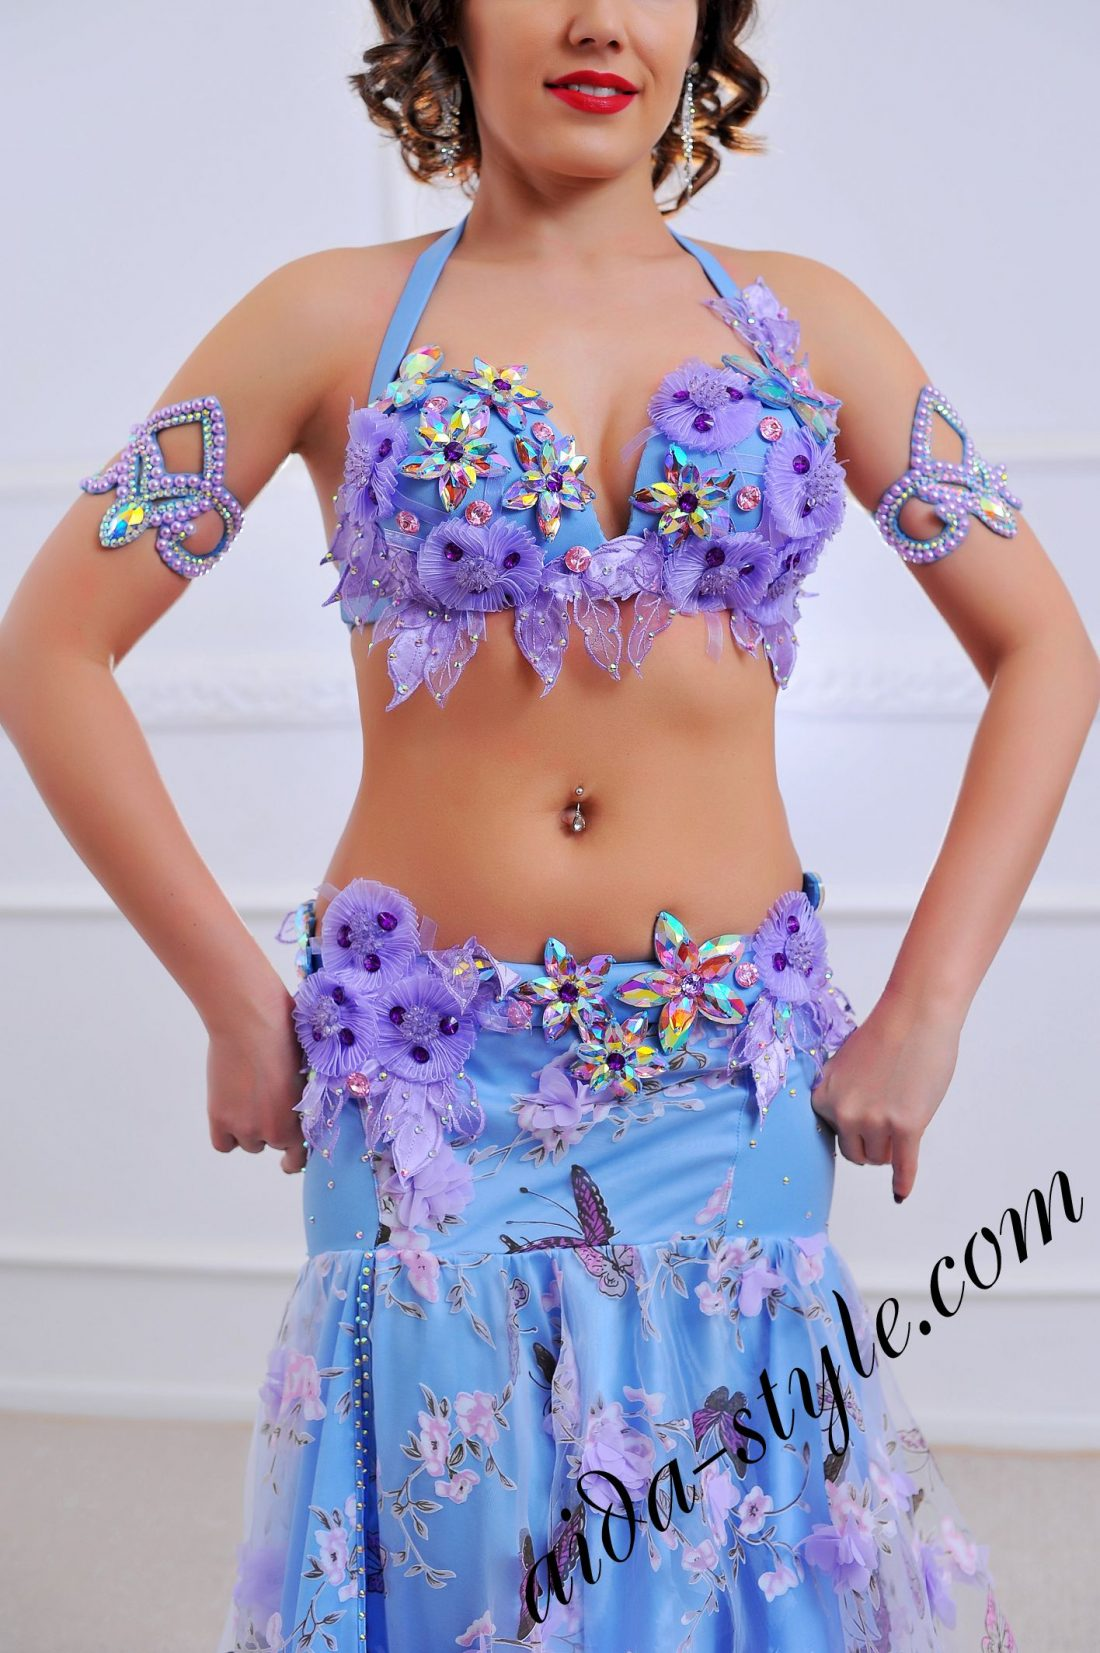 a close up of spring style belly dance costume in light blue (3) by Aida Style